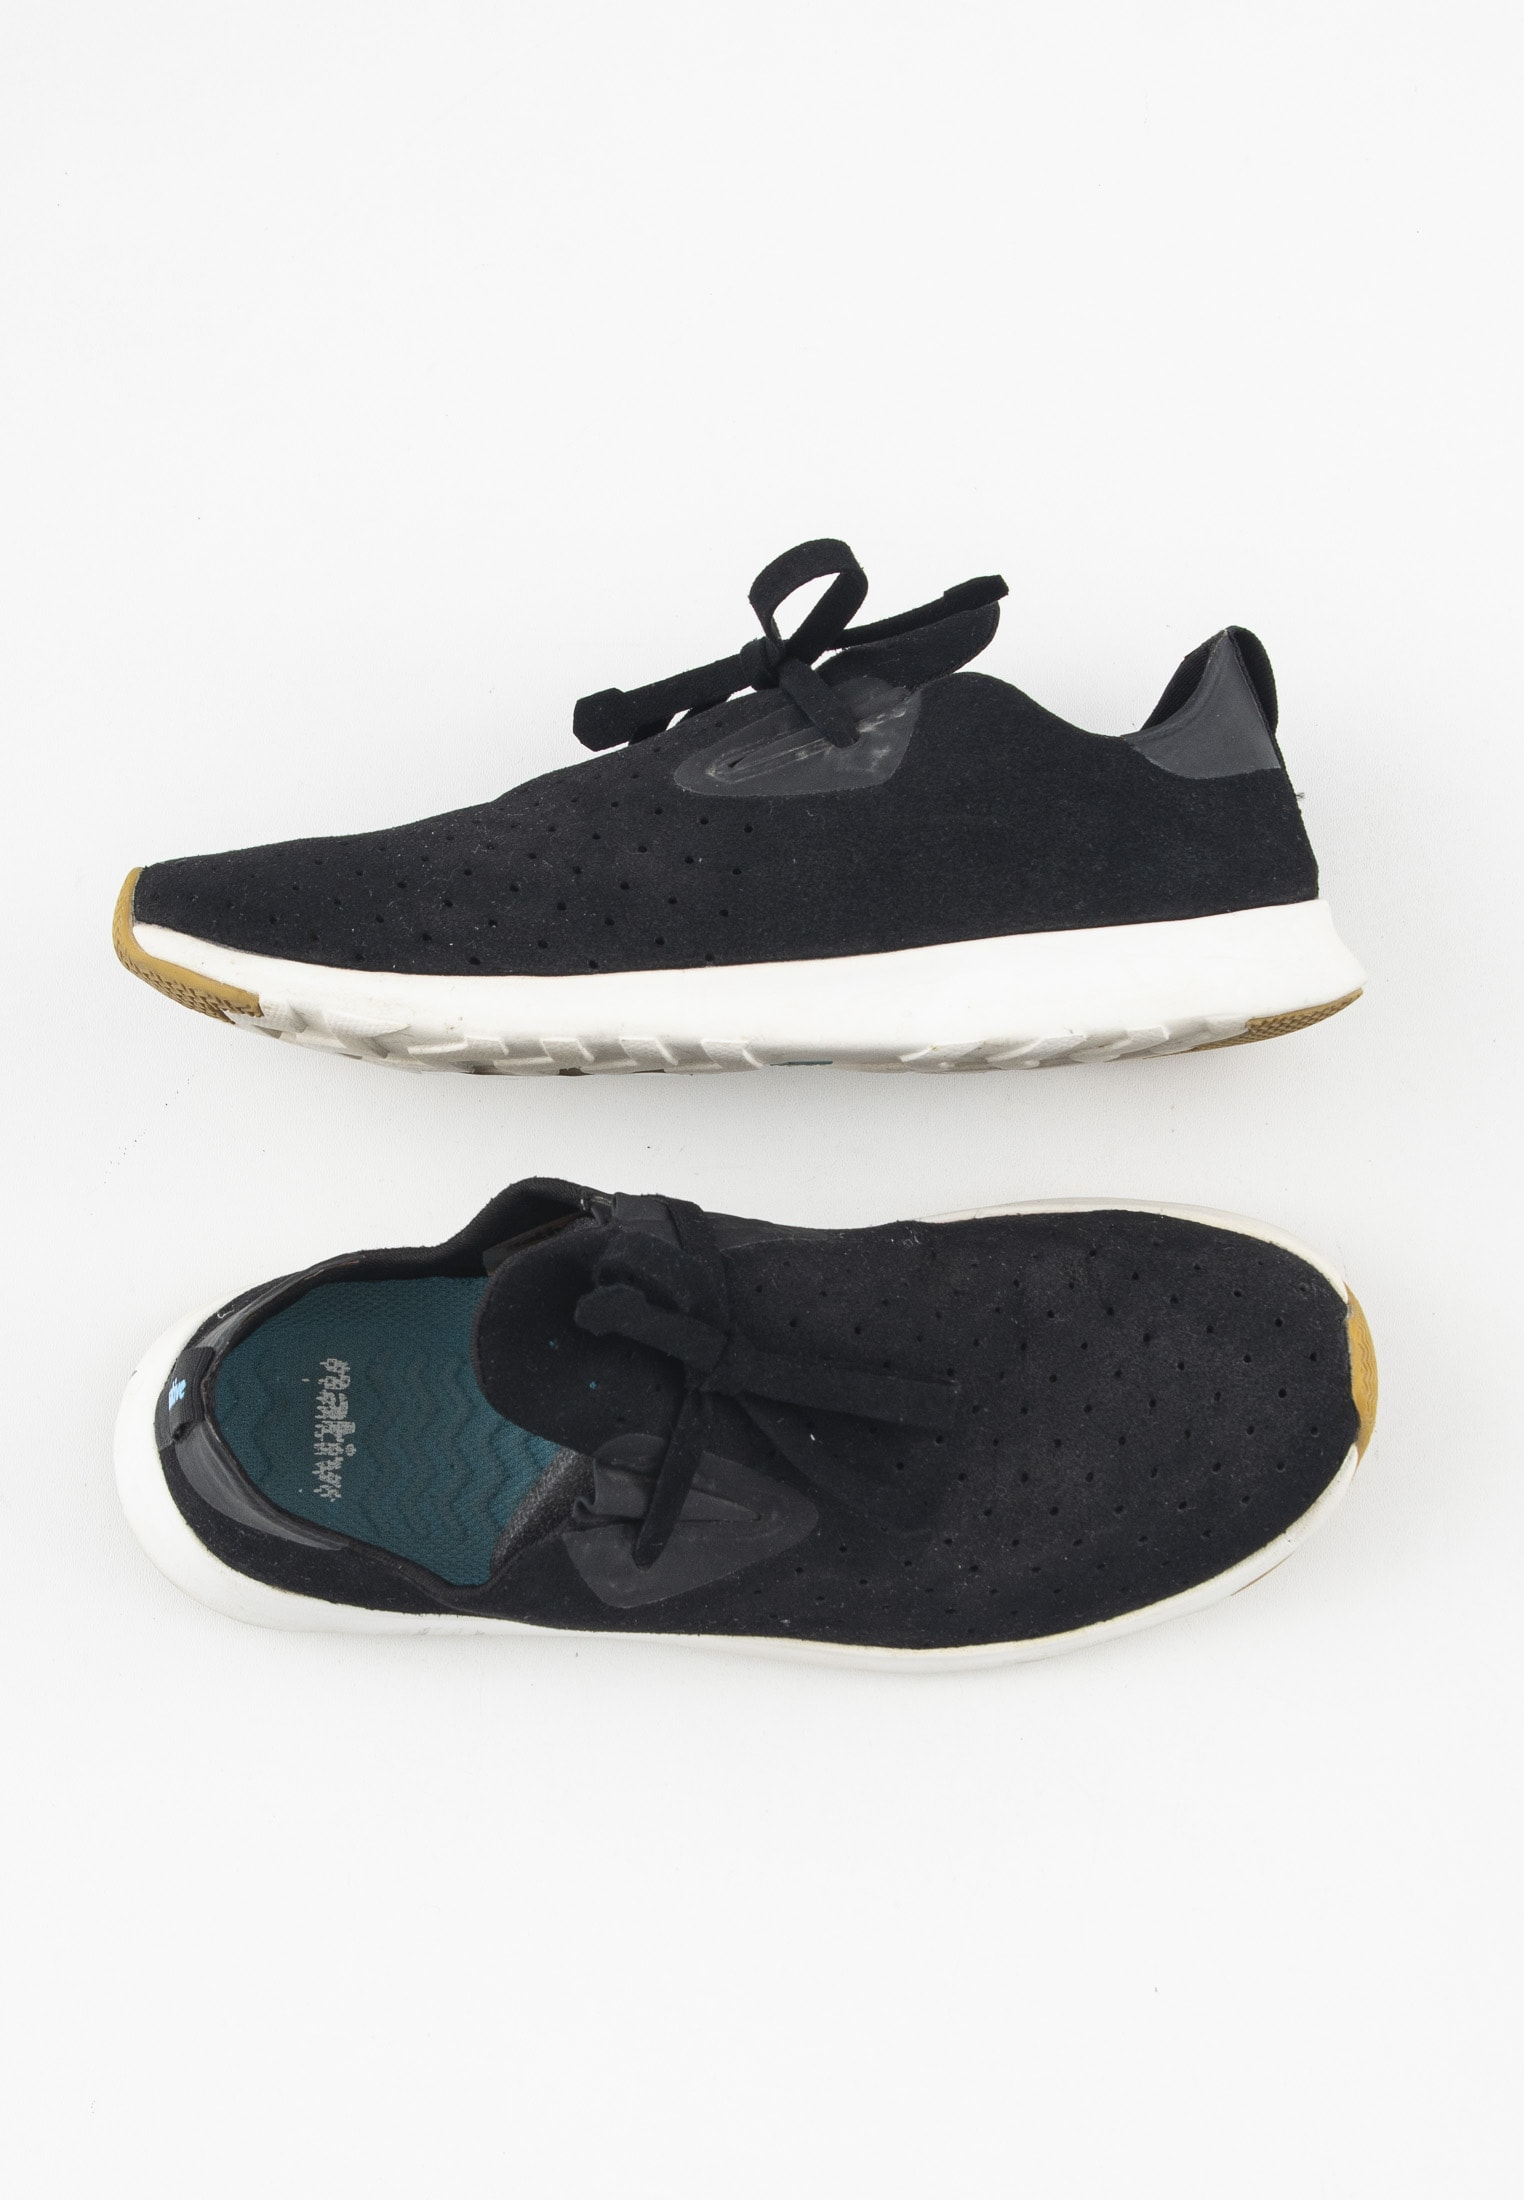 Native sneakers, sort, 38.5